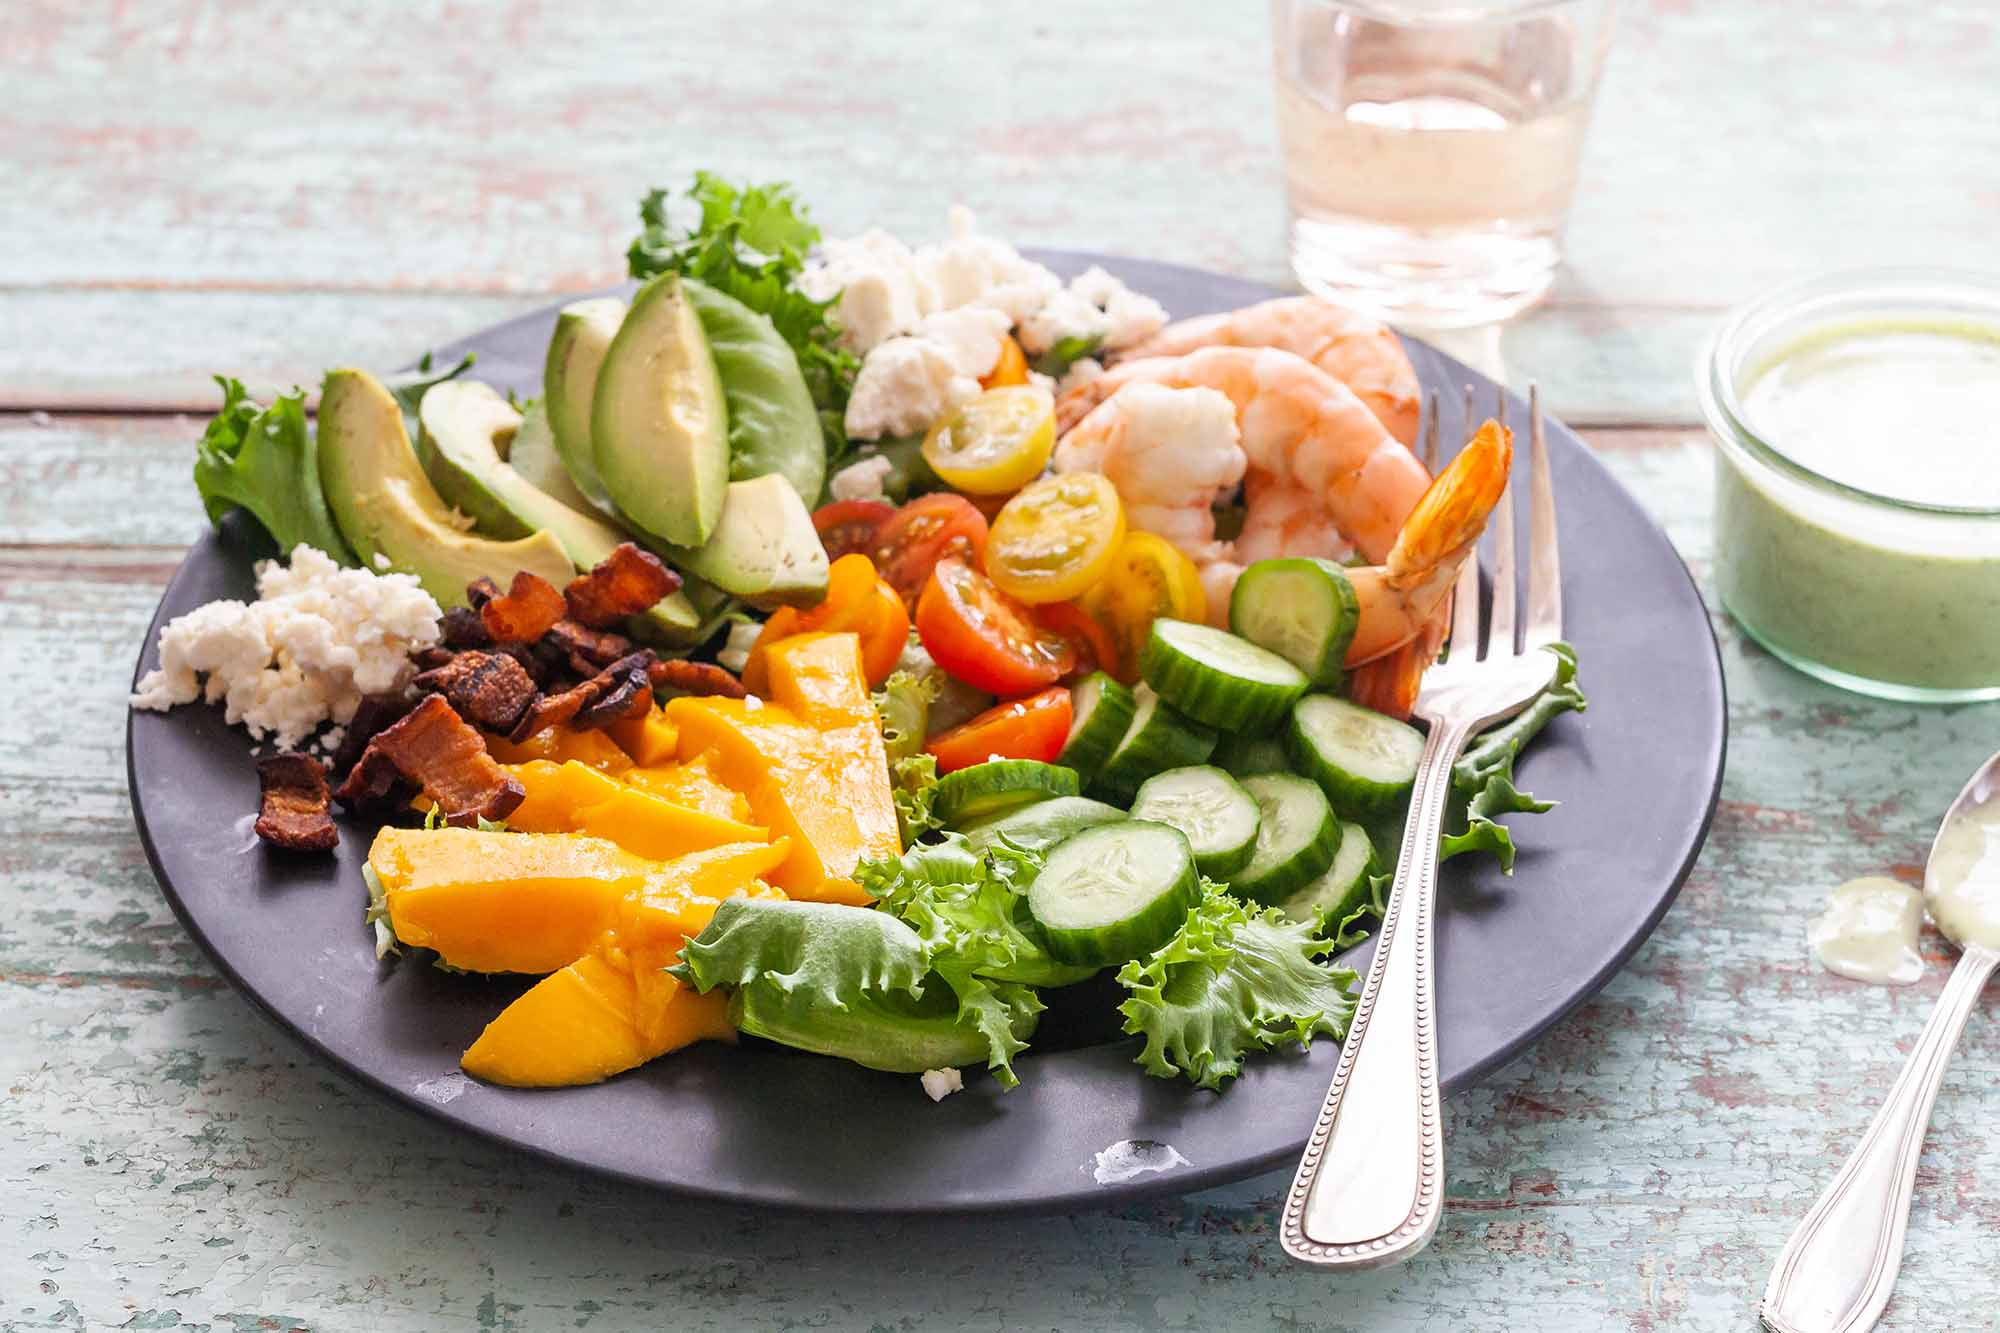 Cobb Salad with Shrimp and Mango - - shrimp and vegetables on gray plate with glass of rose